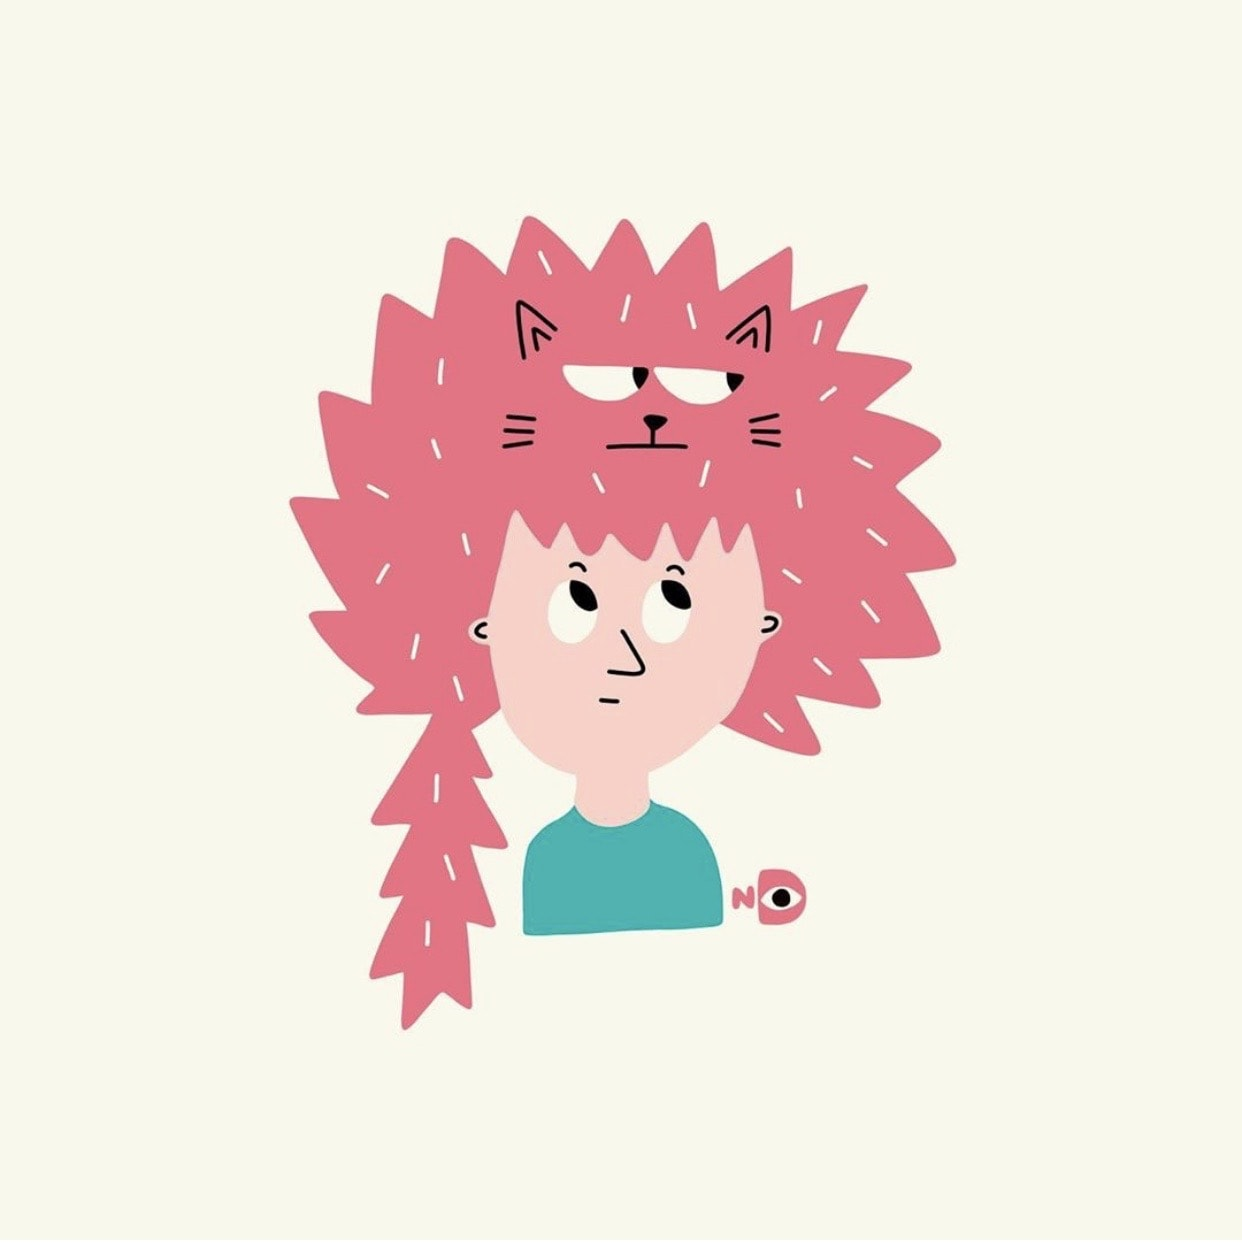 Illustration of girl with funny cat on her head by Nina Dzyvulska